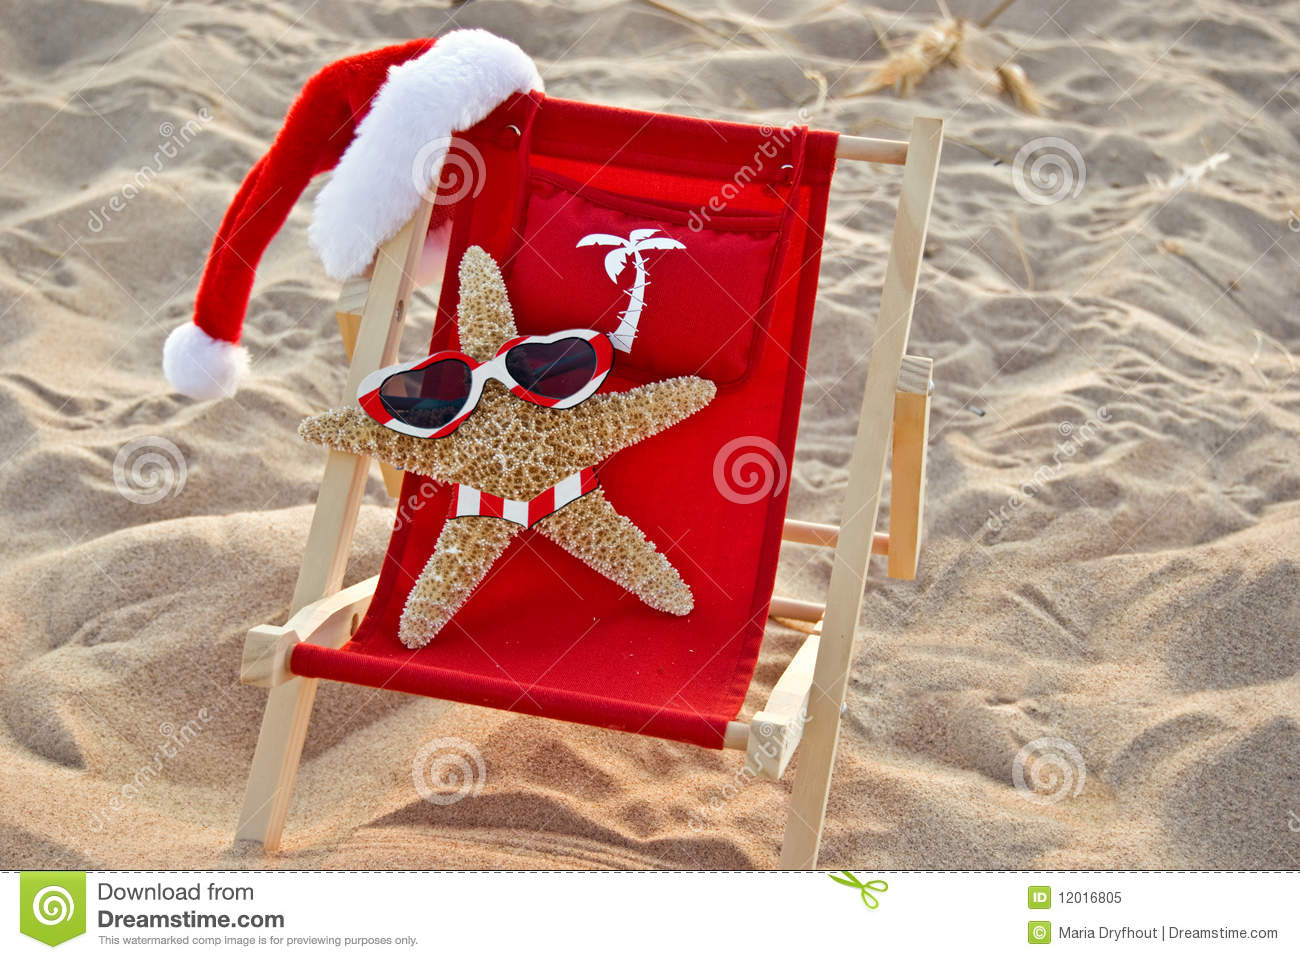 Santa starfish on a red beach chair royalty free stock photo image